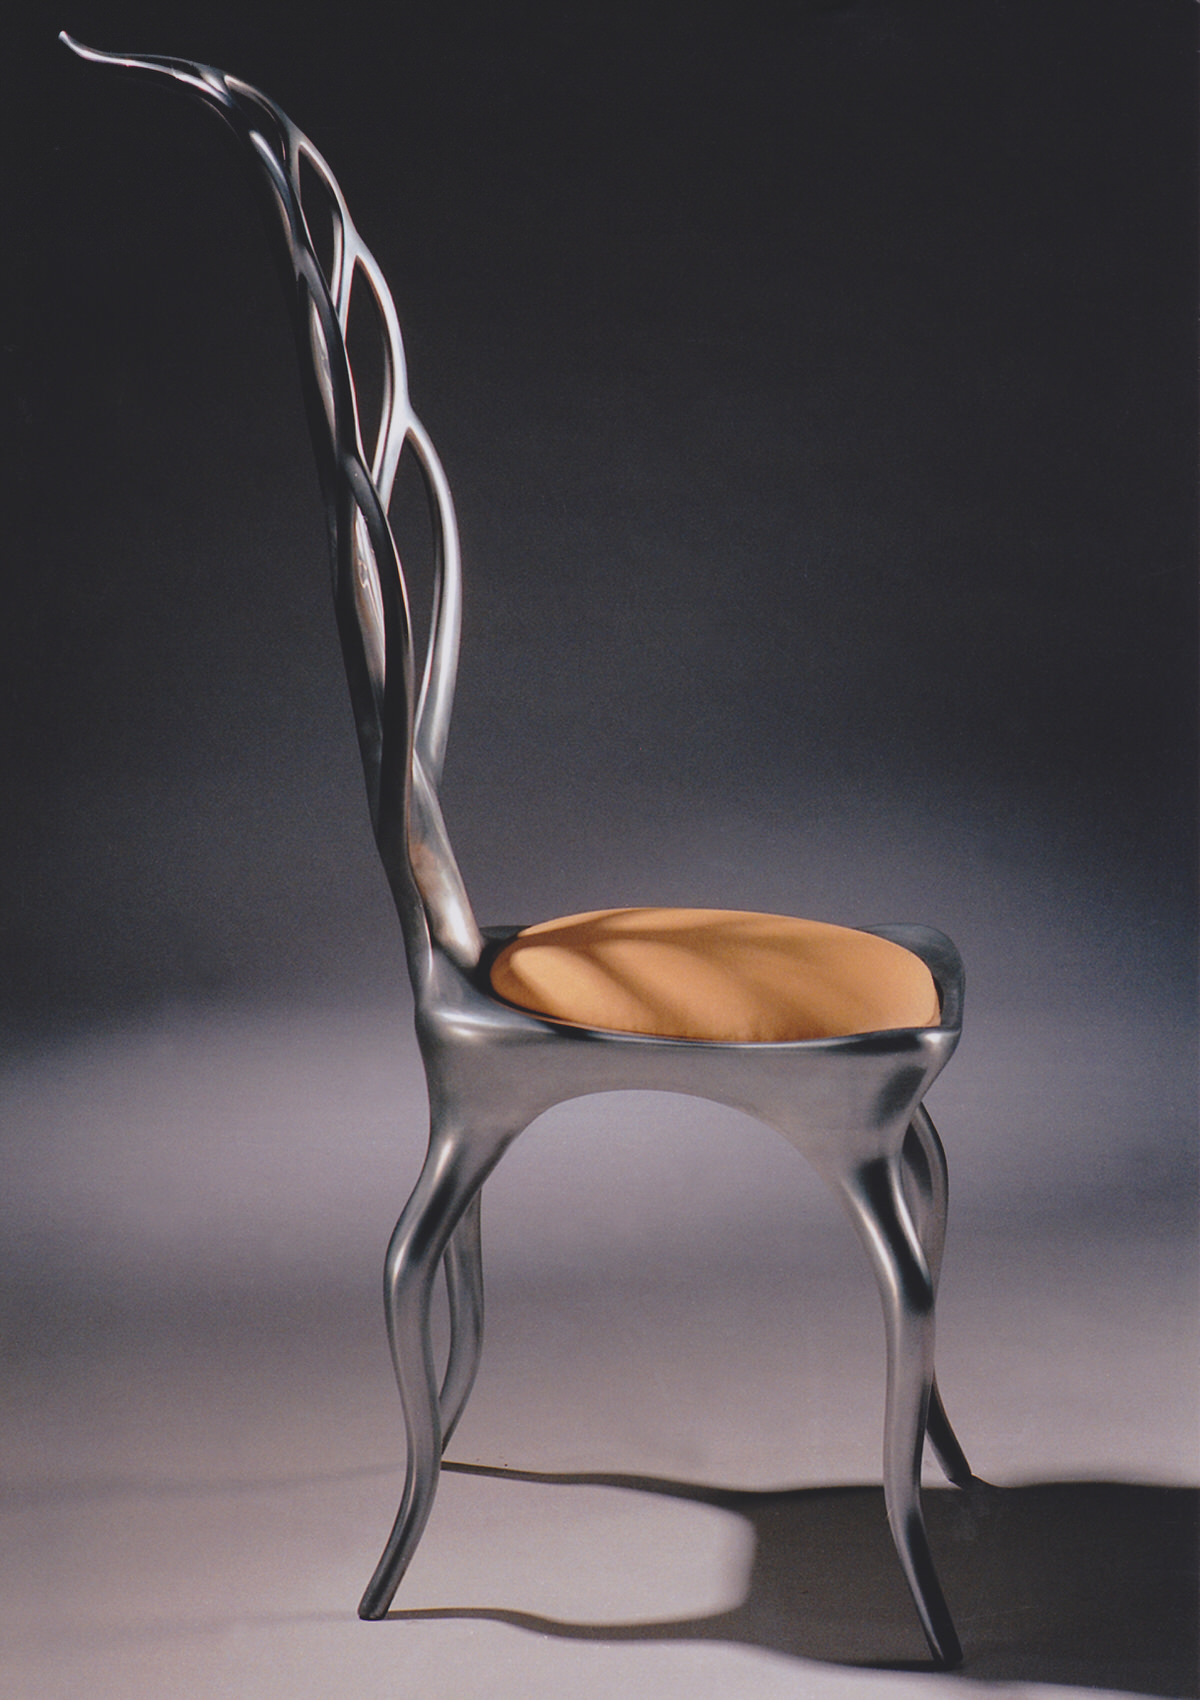 Leaf Chair aluminium sculptural designer furniture unique fruniture MOMA tree chairs design museum chaires bespoke chairs occasional chairs Mark Reed